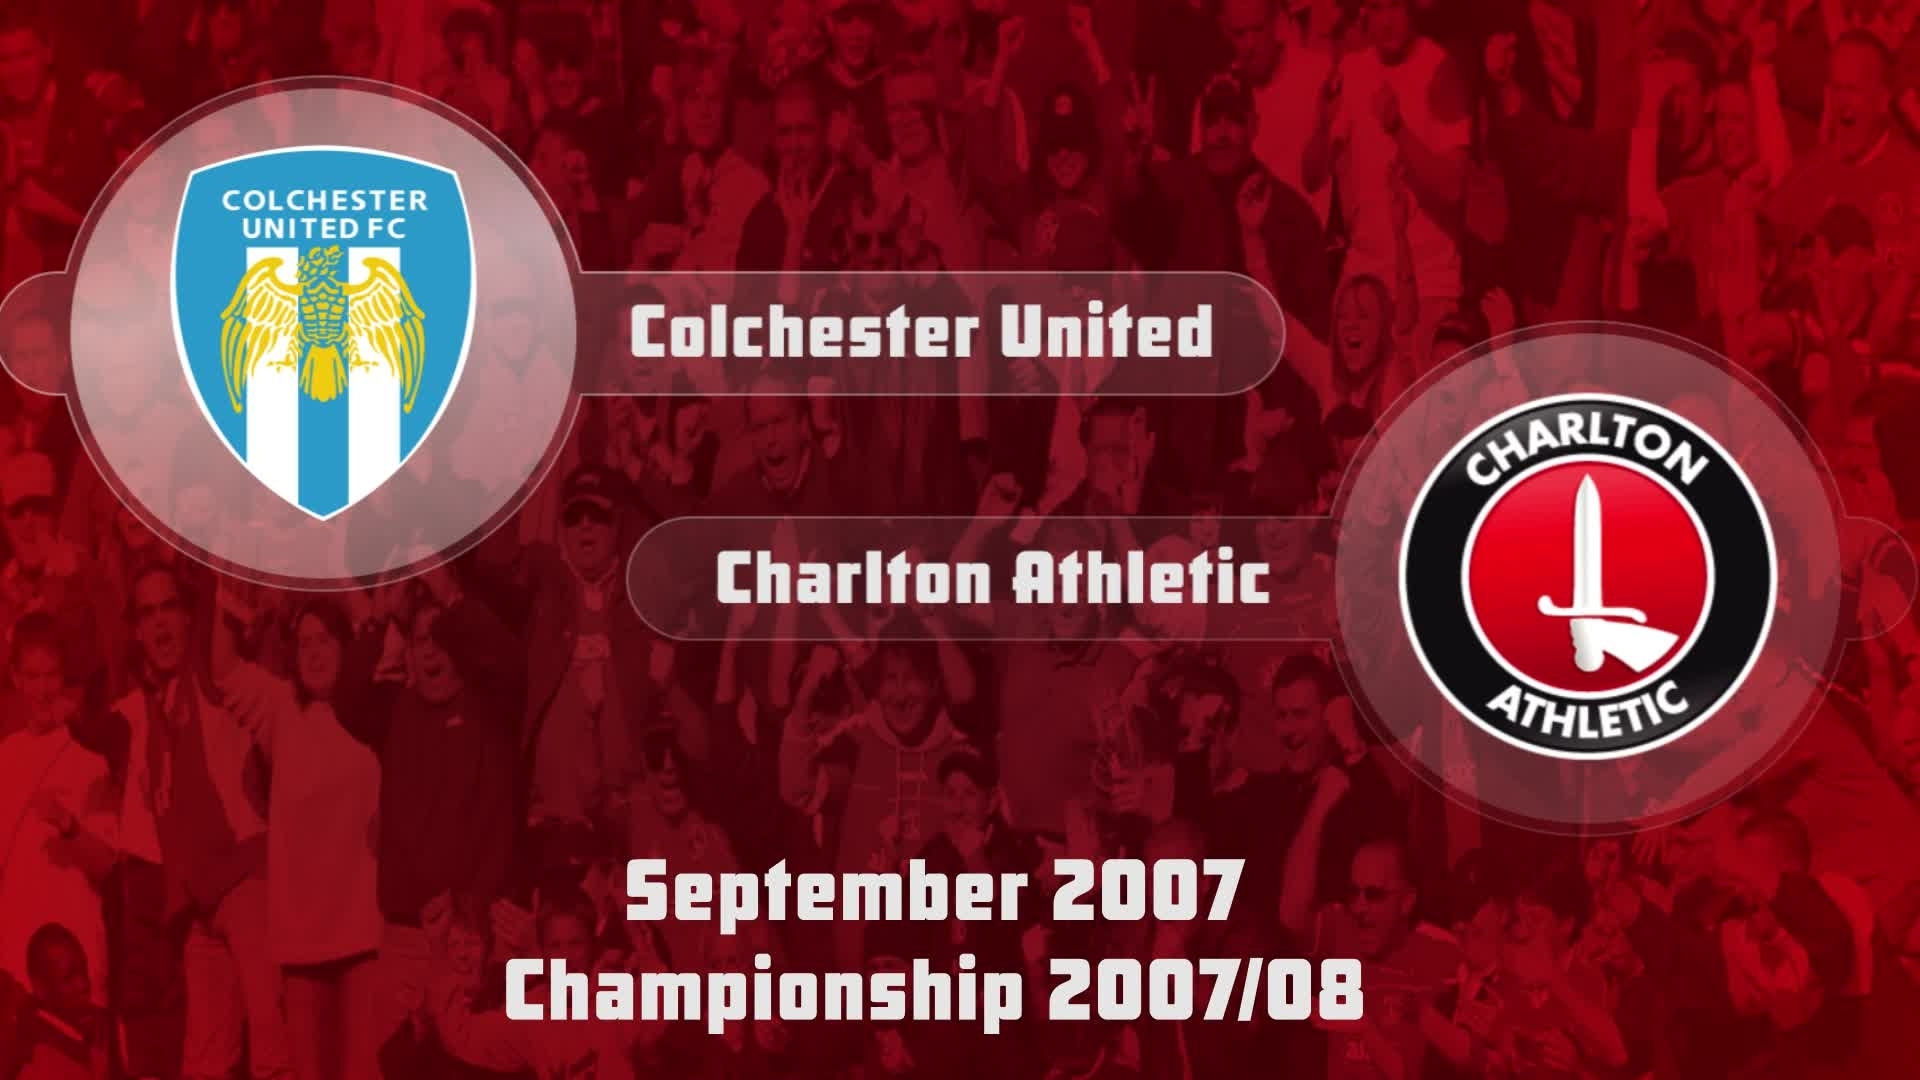 07 HIGHLIGHTS | Colchester 2 Charlton 2 (Sept 2007)